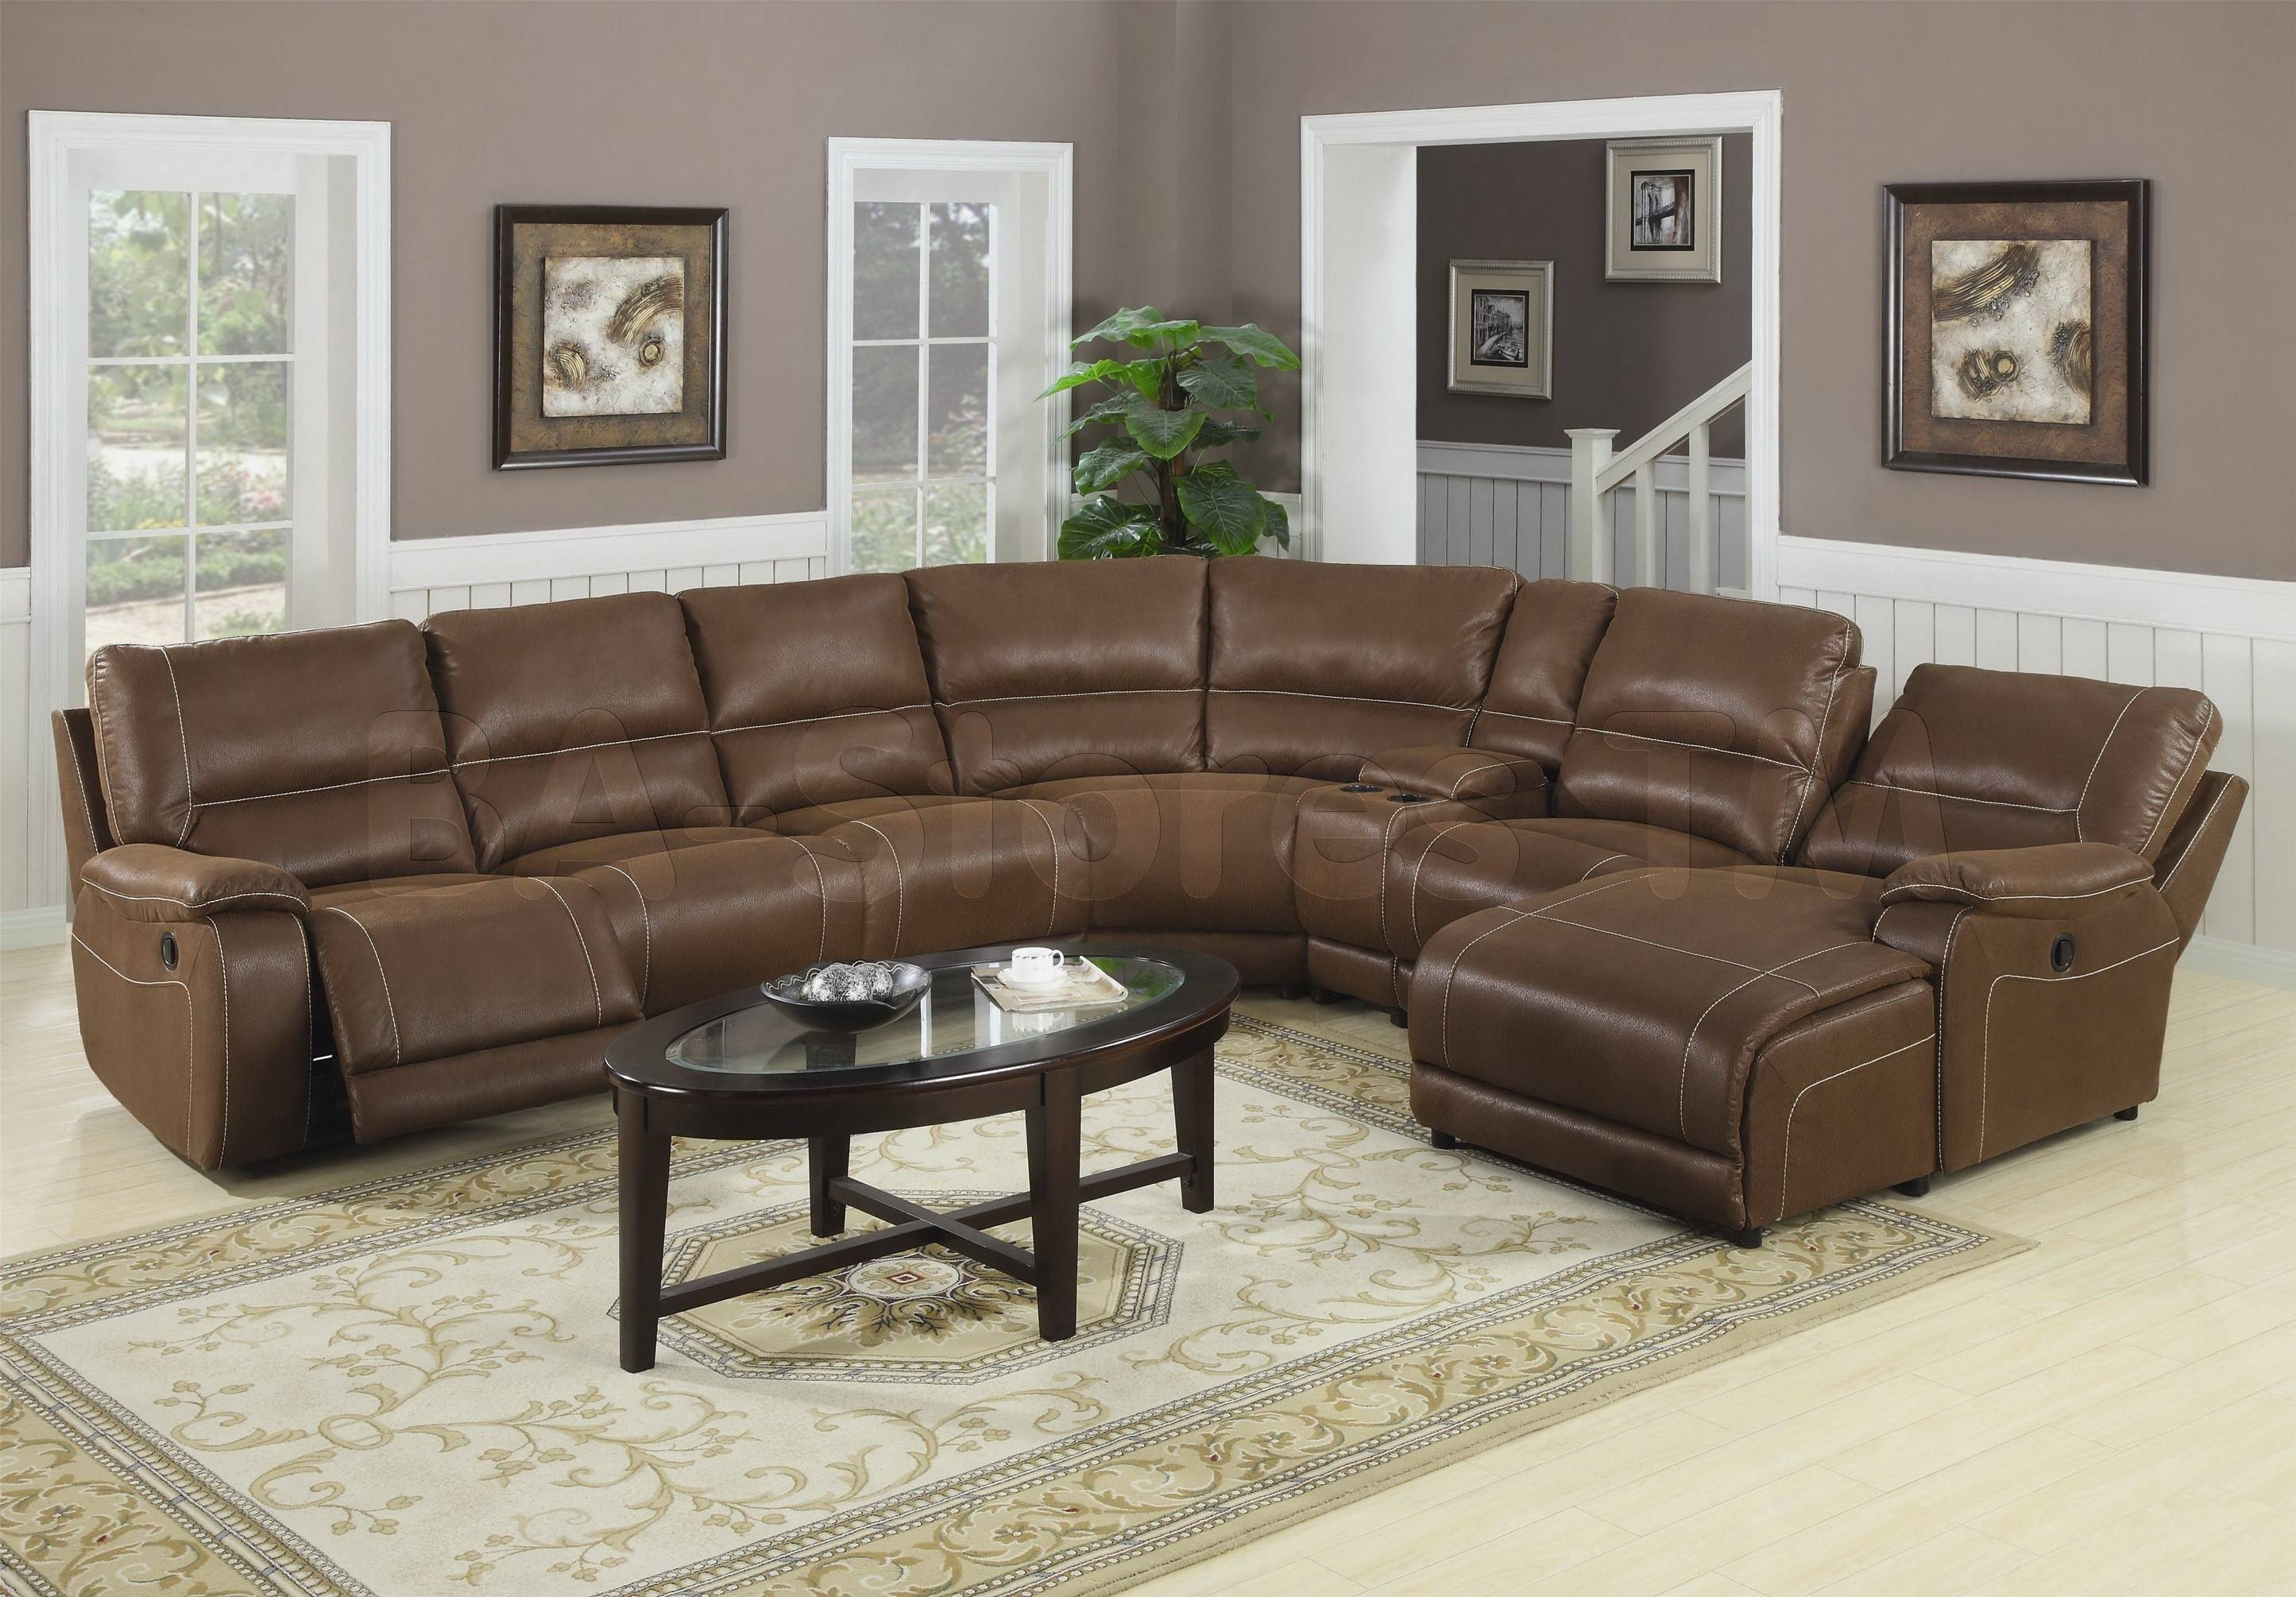 Charming Suede Sectional Sofas 70 On Conversation Sofa Sectional with regard to Conversation Sofa Sectional (Image 6 of 30)